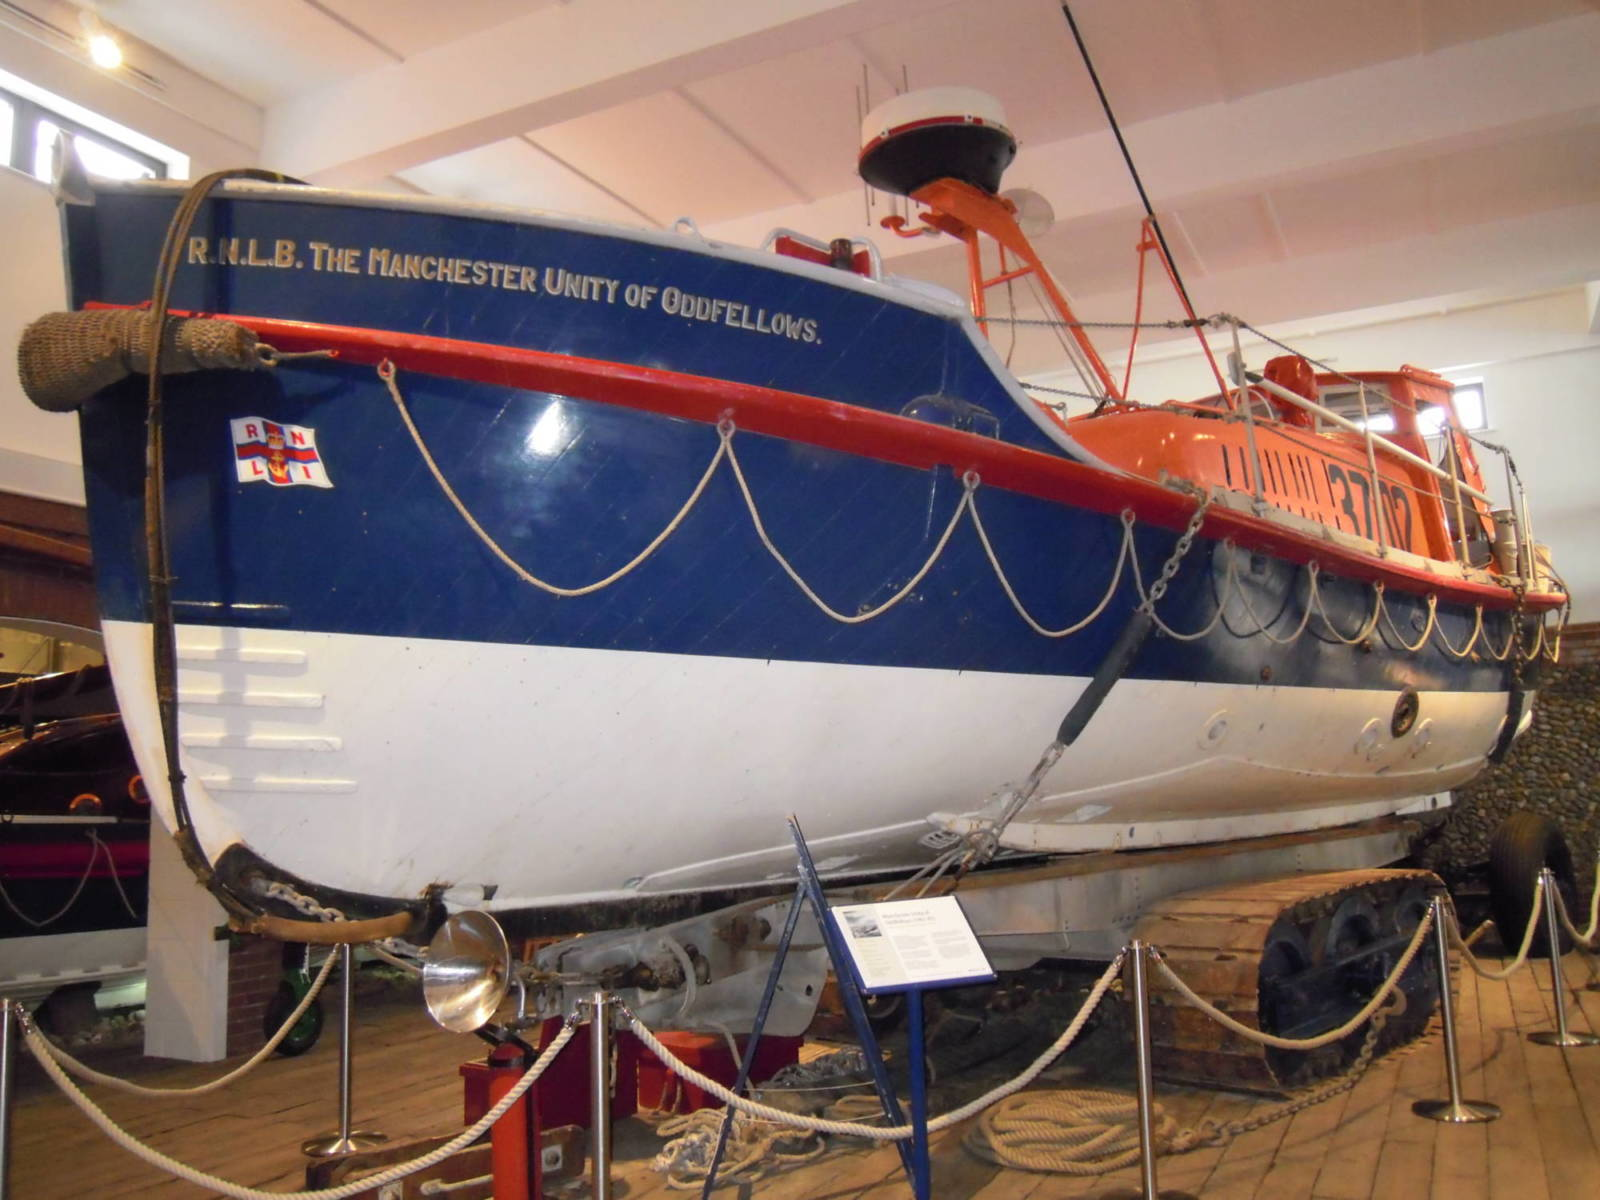 sheringham_lifeboat_the_manchester_unity_of_oddfellows_on960_sheringham_museum_29_03_2010_1